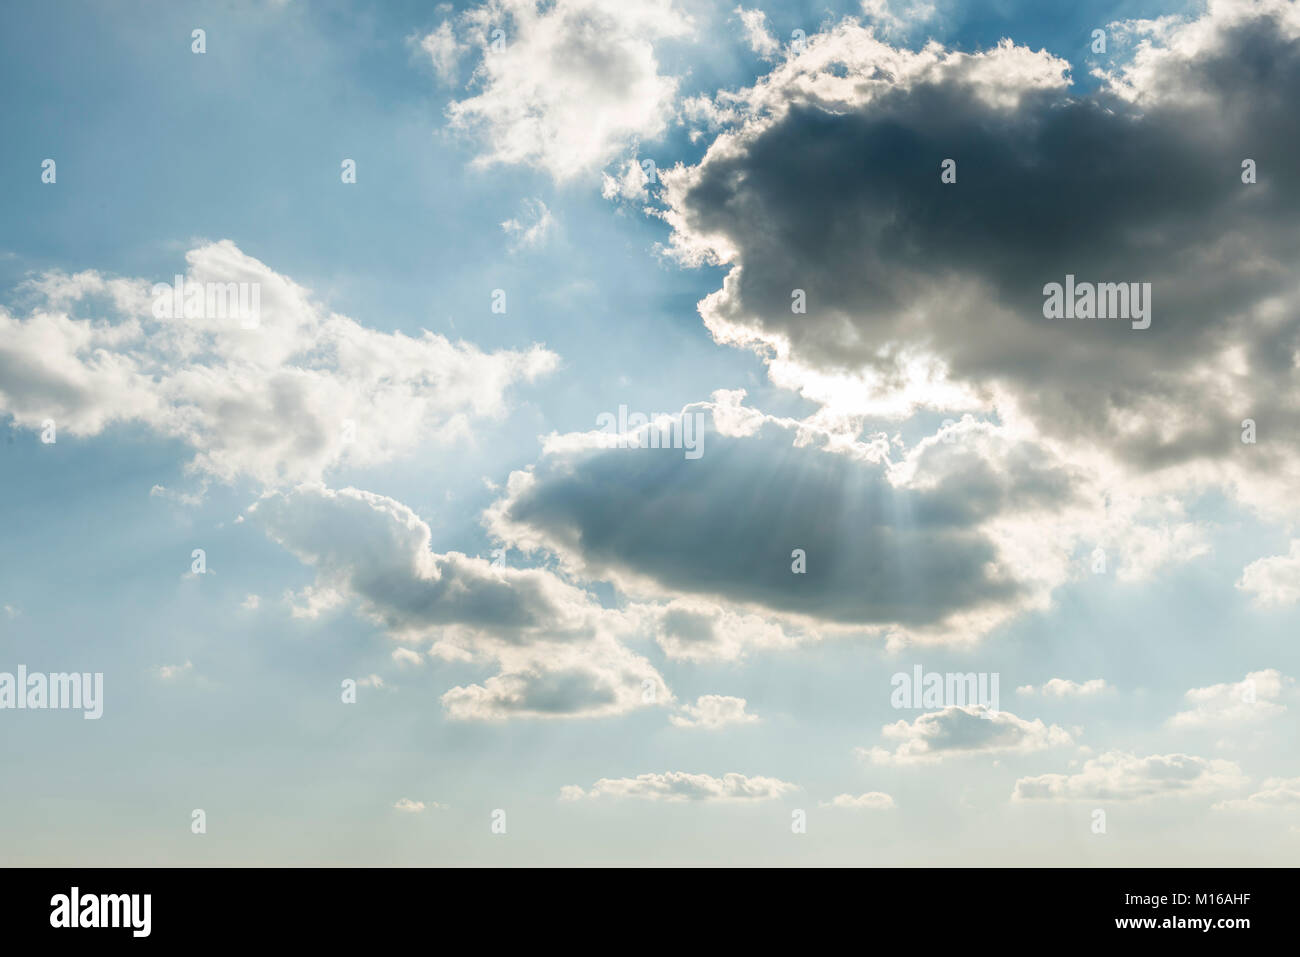 Sun shines behind dark clouds, Germany - Stock Image